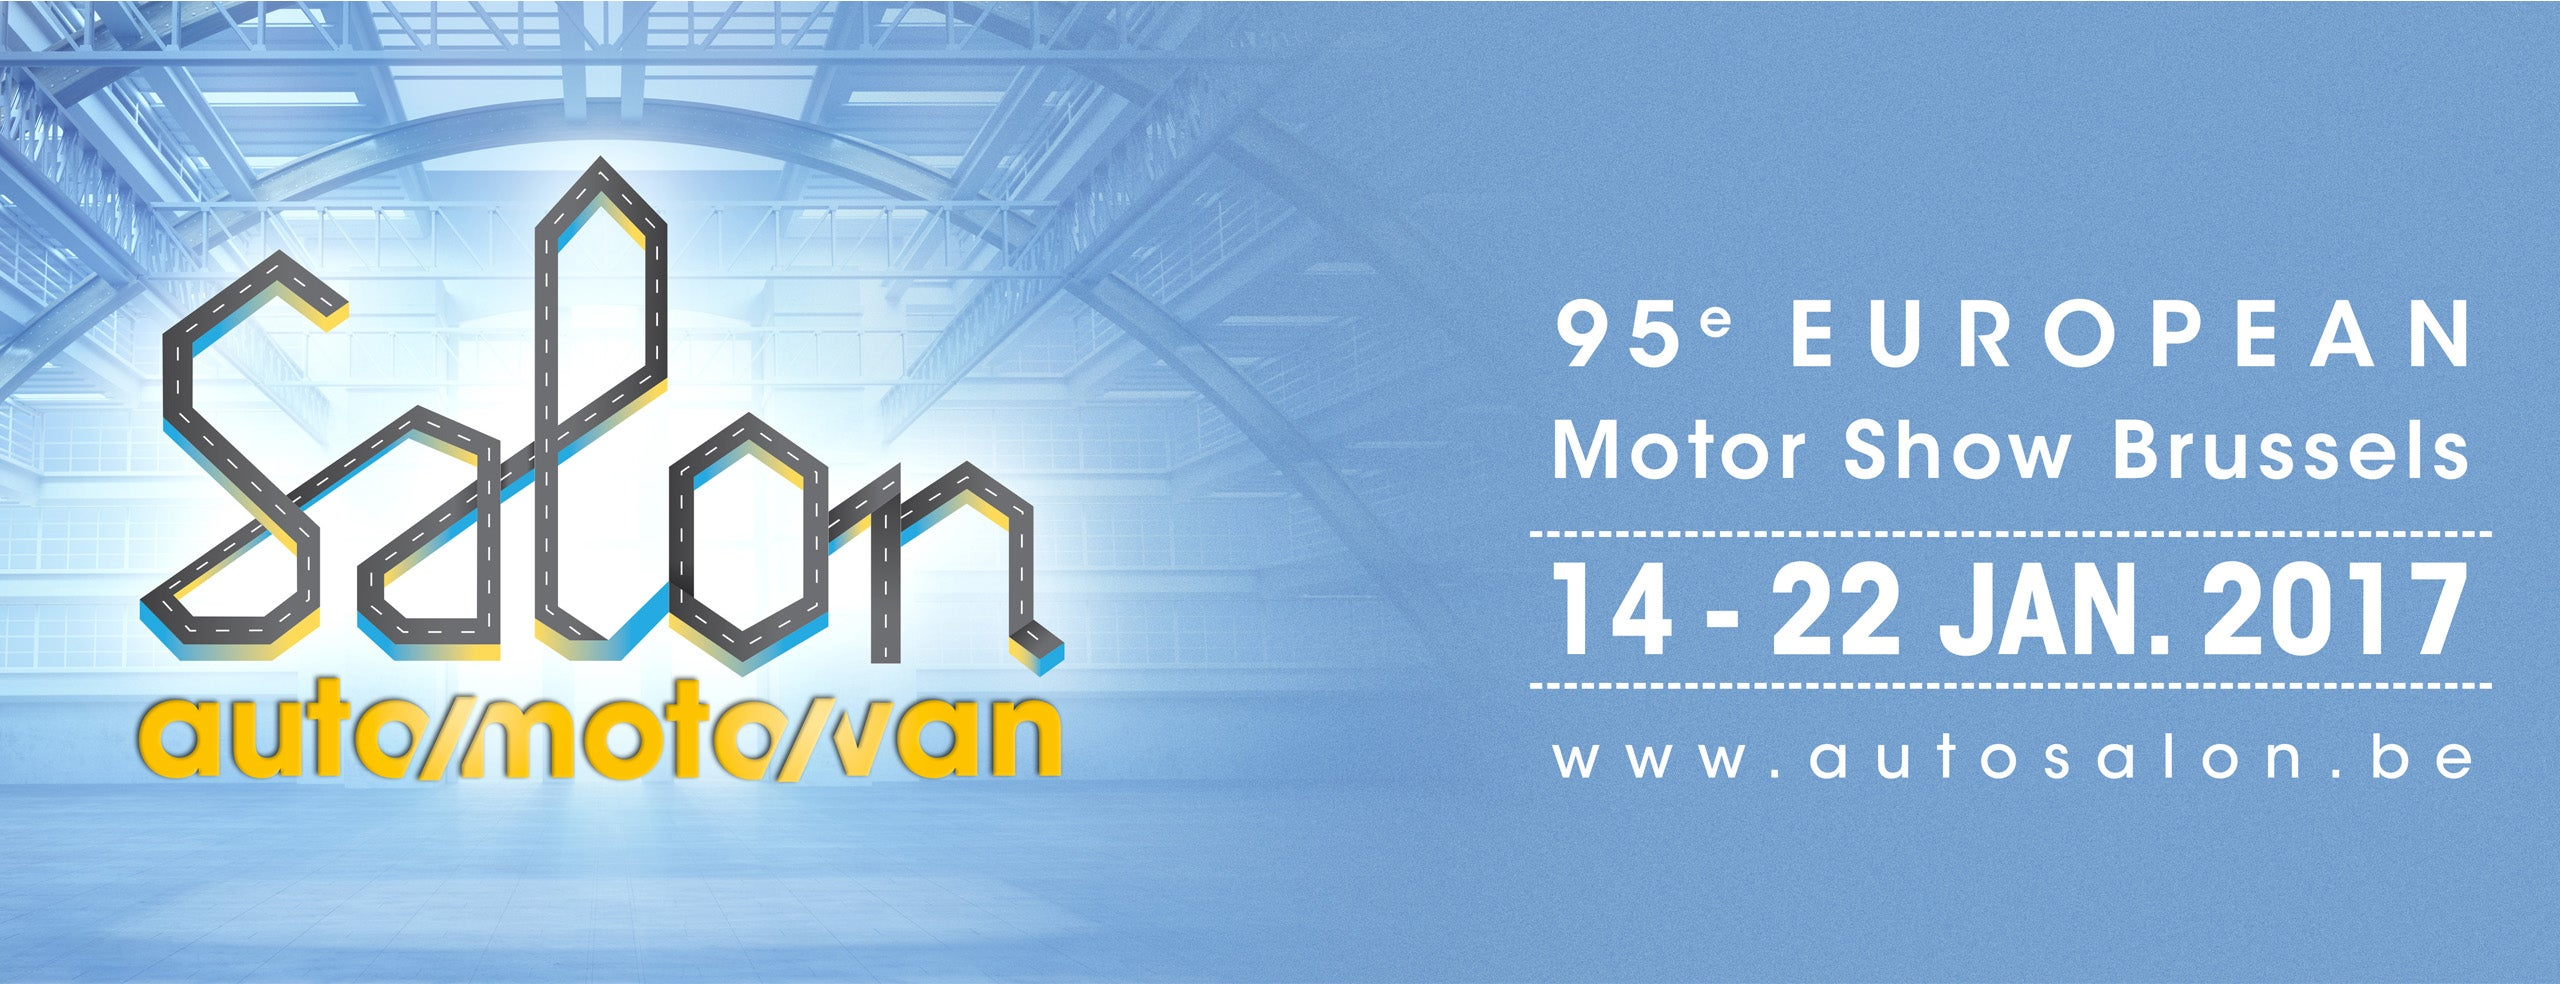 Salon D Auto Bruxelles 95e European Motor Show Brussels Welcome To Brussels Expo